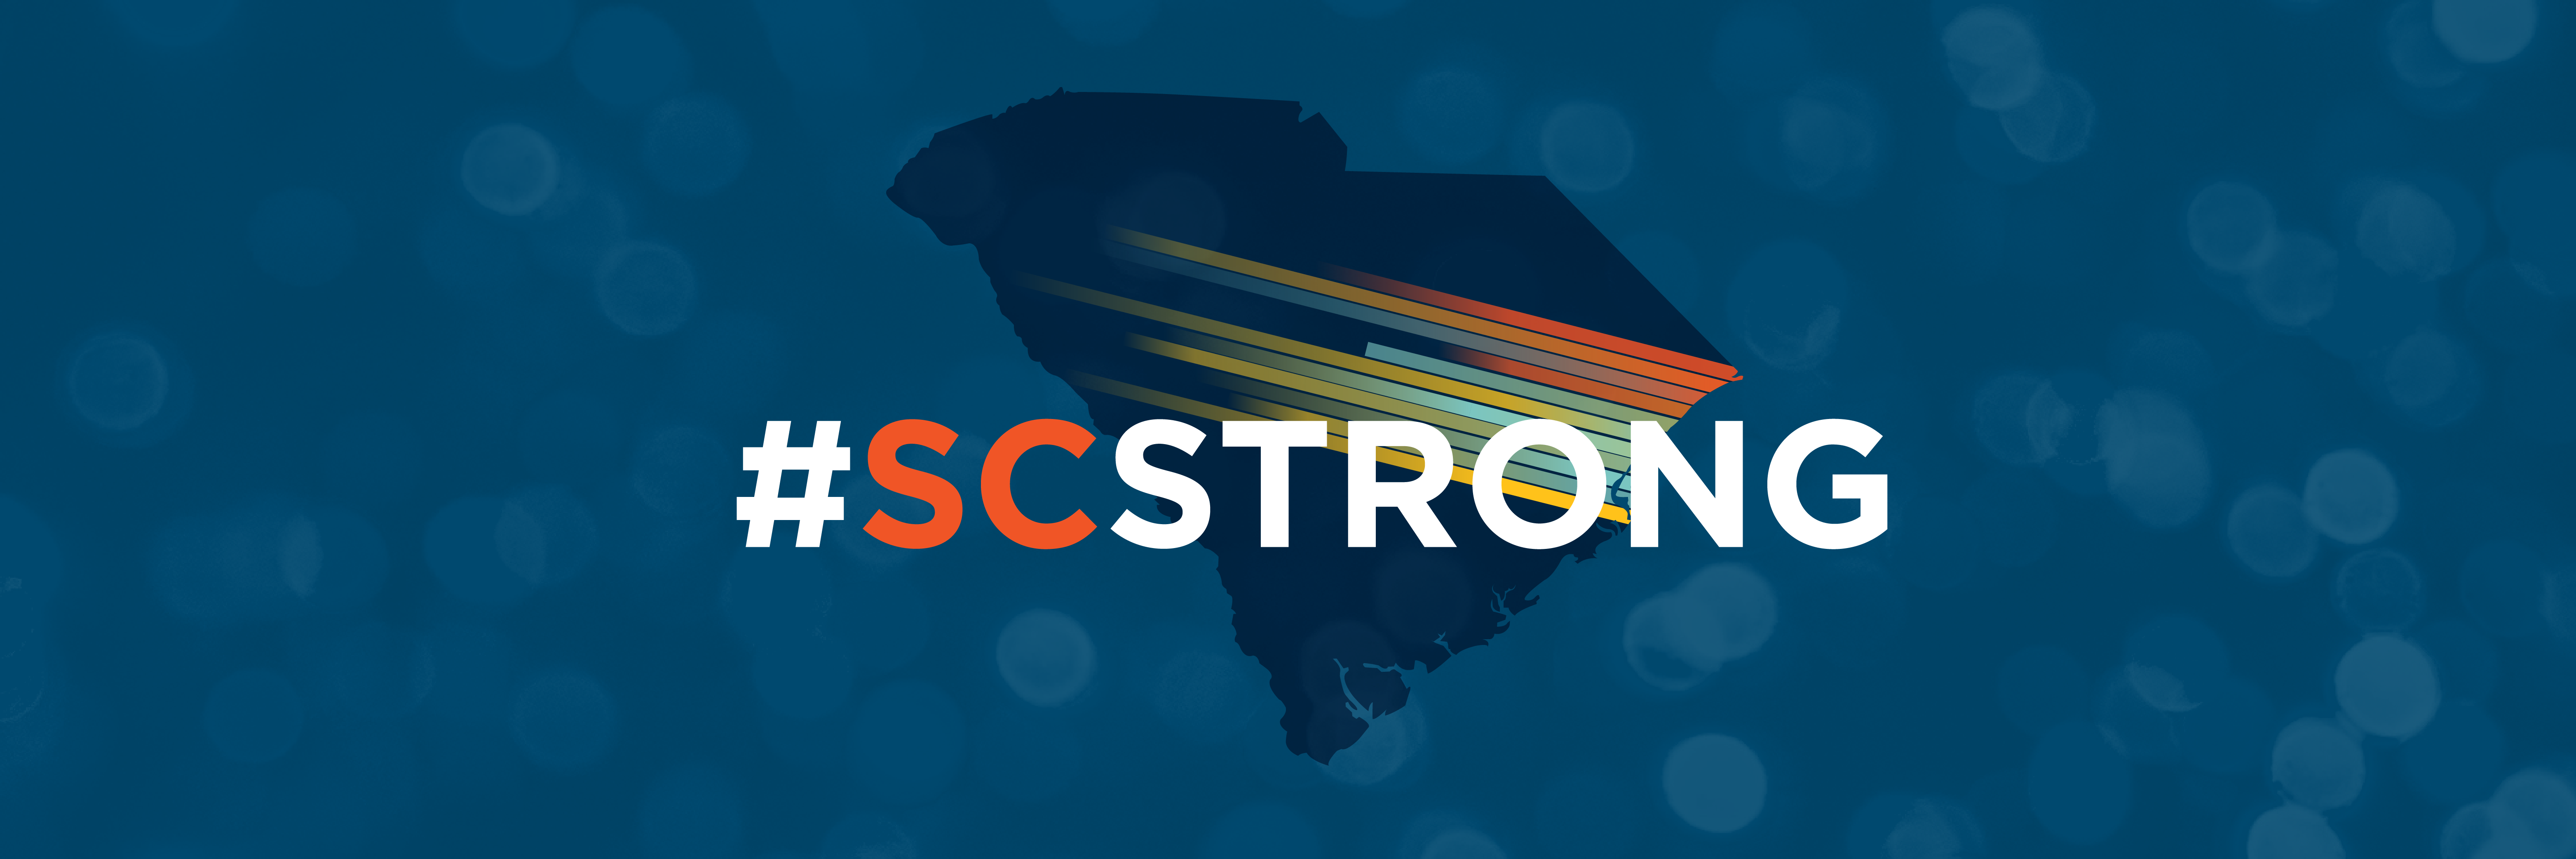 #FHNY is #SCStrong